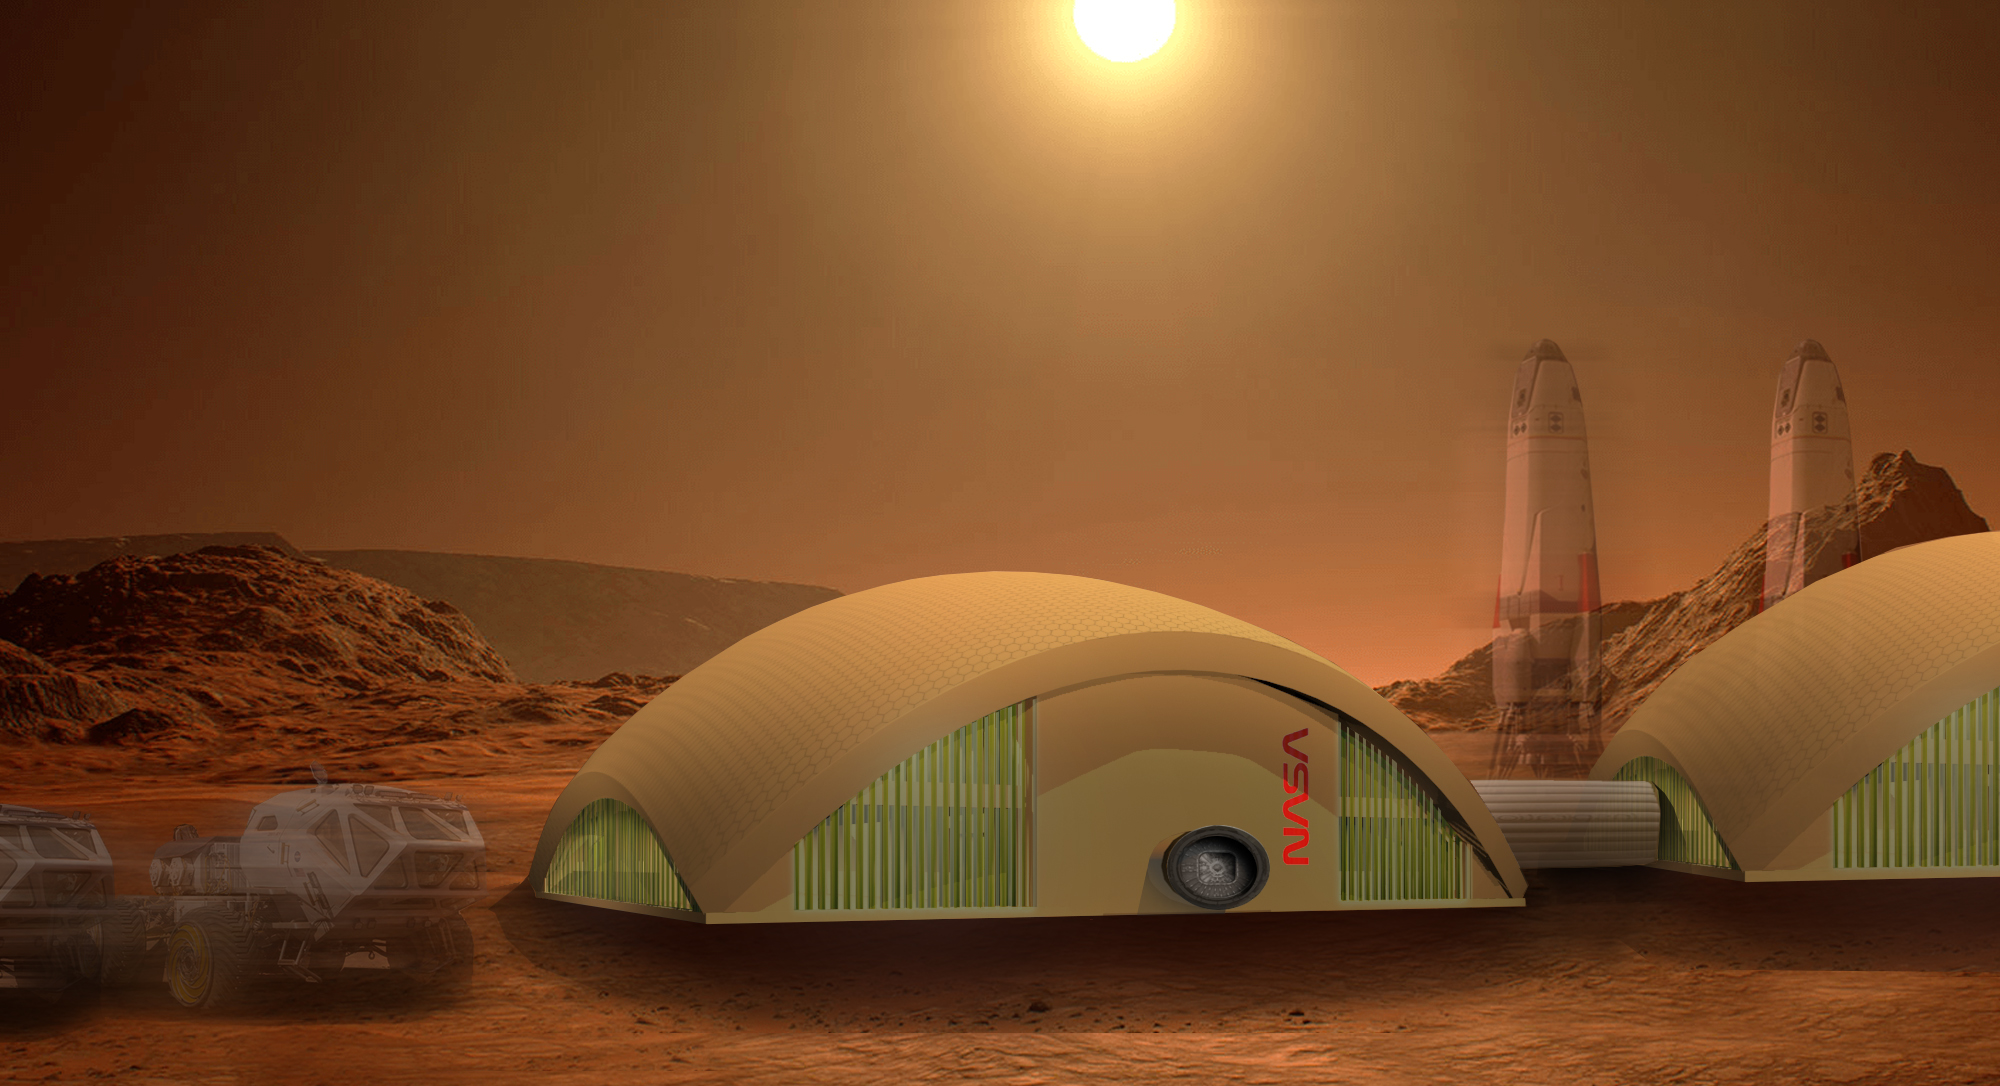 Redhouse Studio design for building on Mars using fungi and algae building materials.